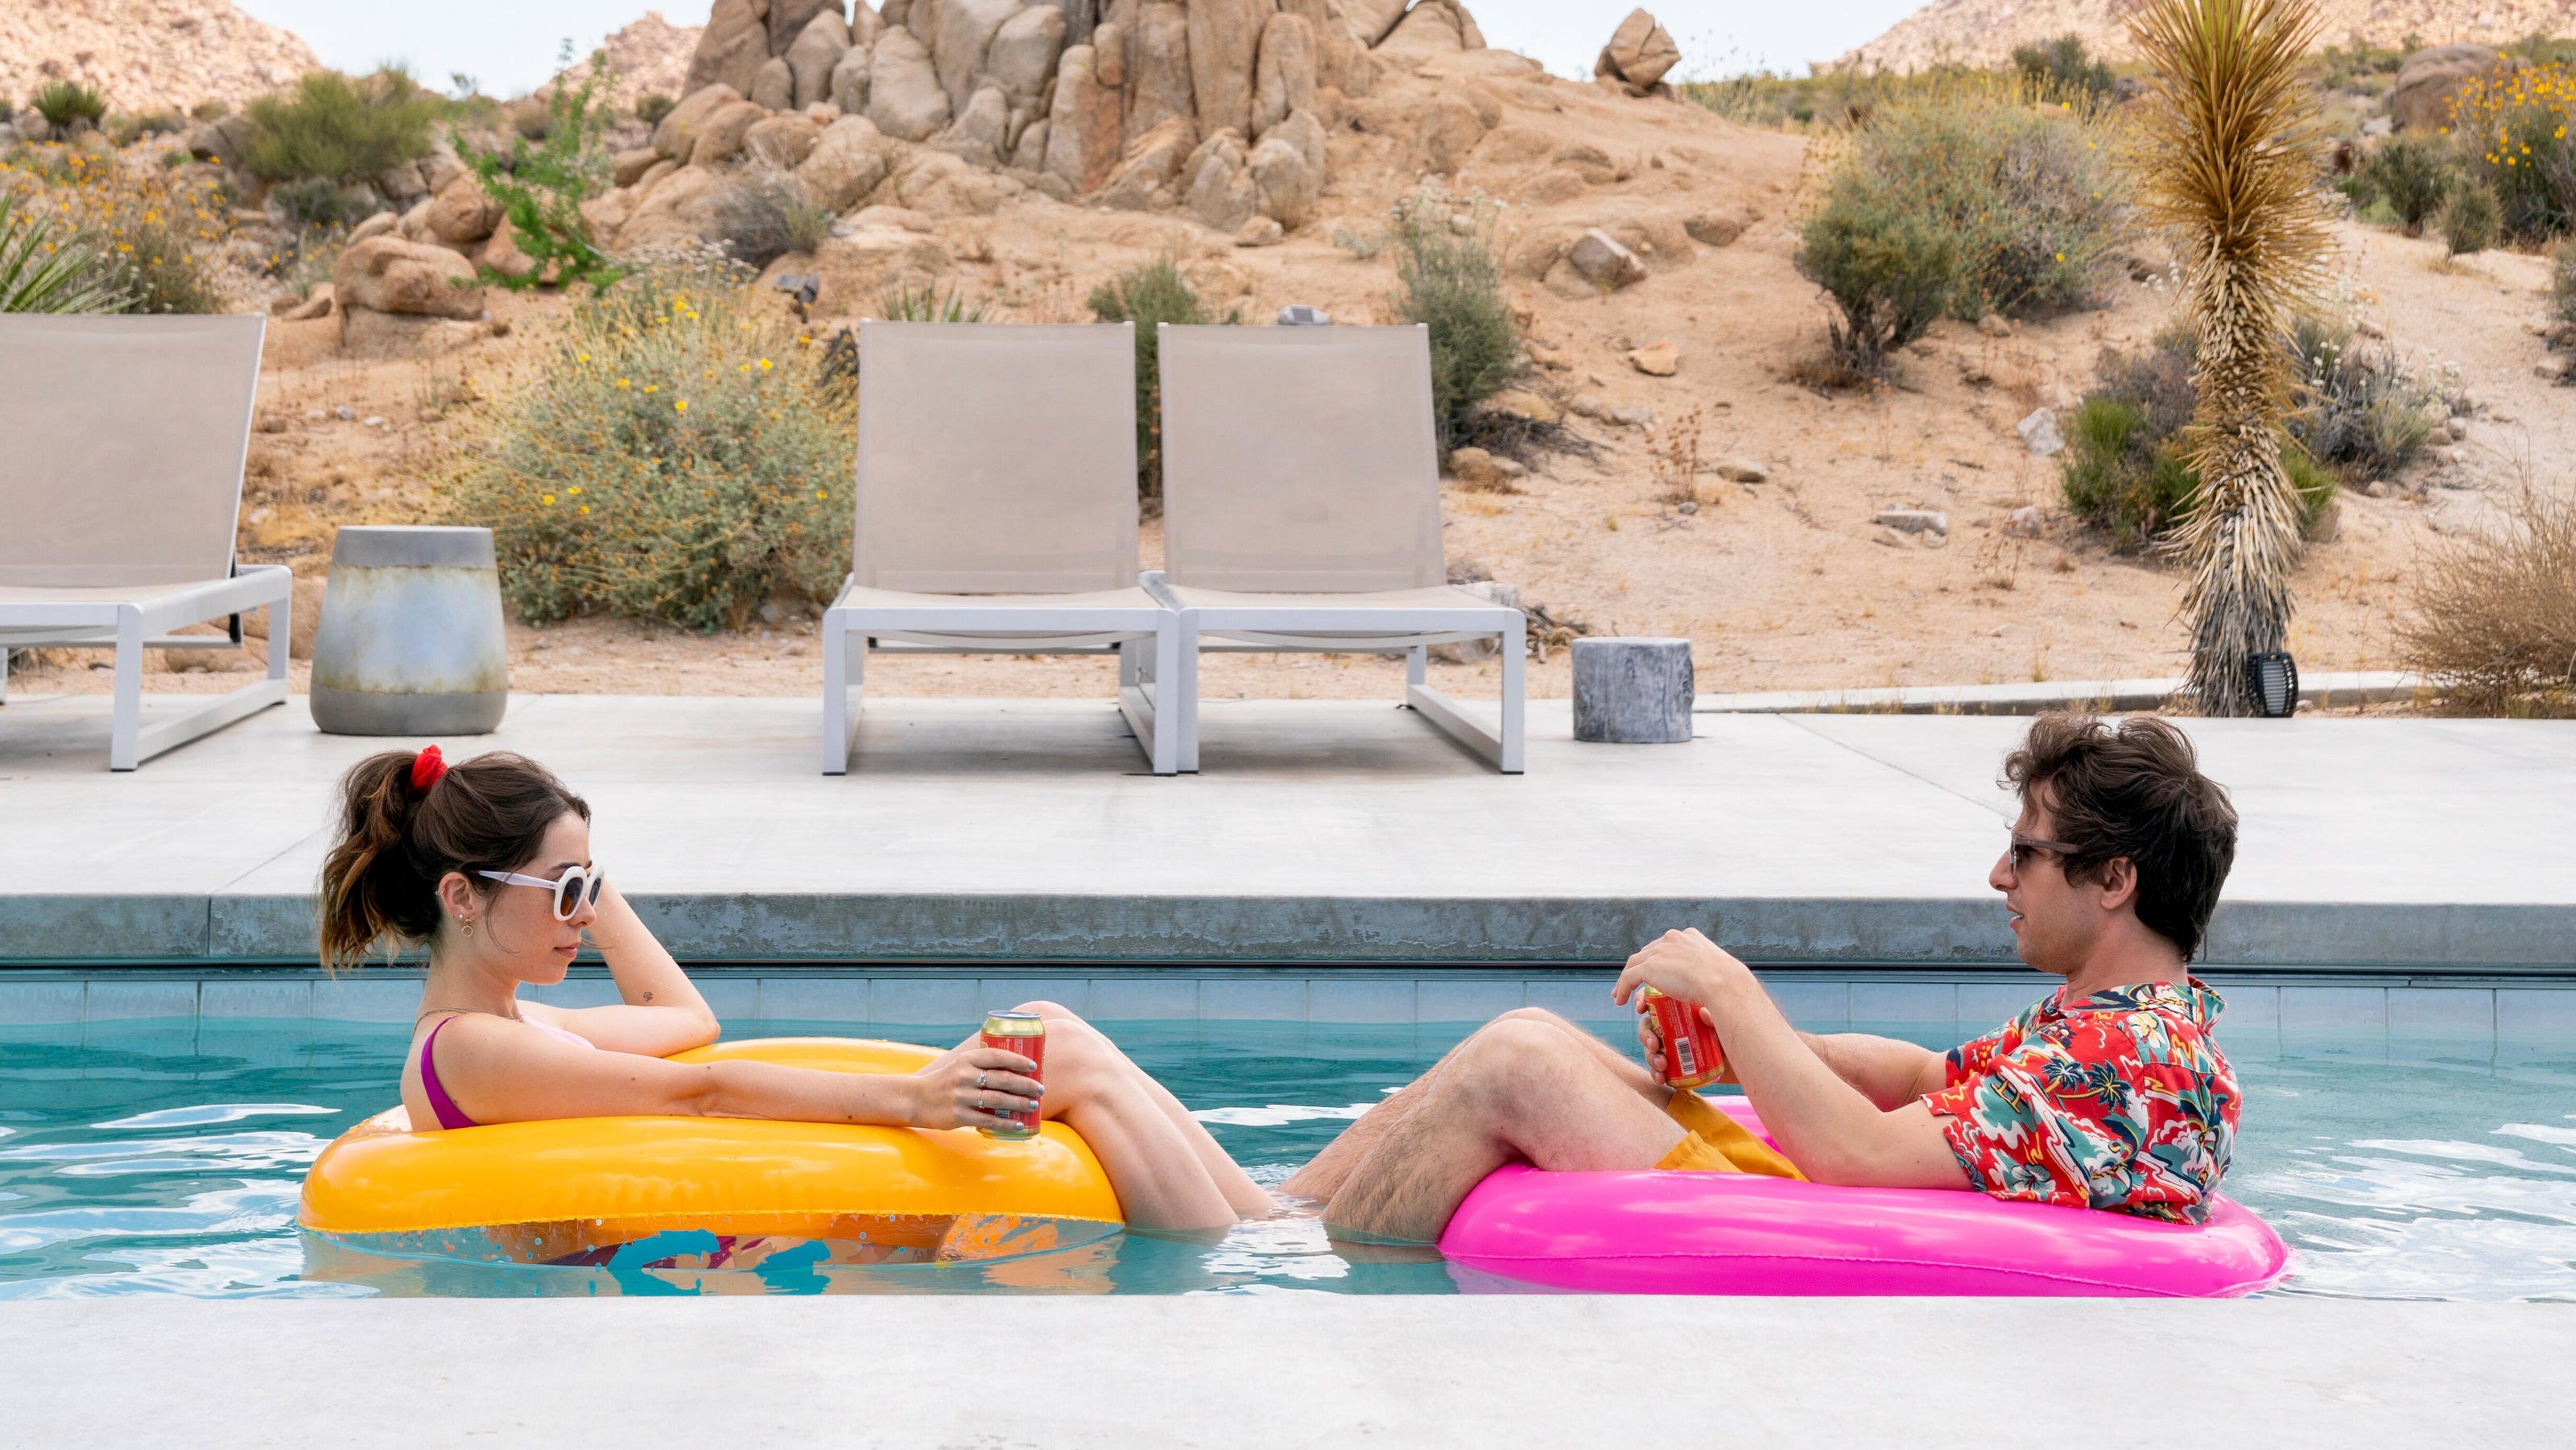 Palm Springs' review: Andy Samberg Hulu comedy great COVID-19 viewing